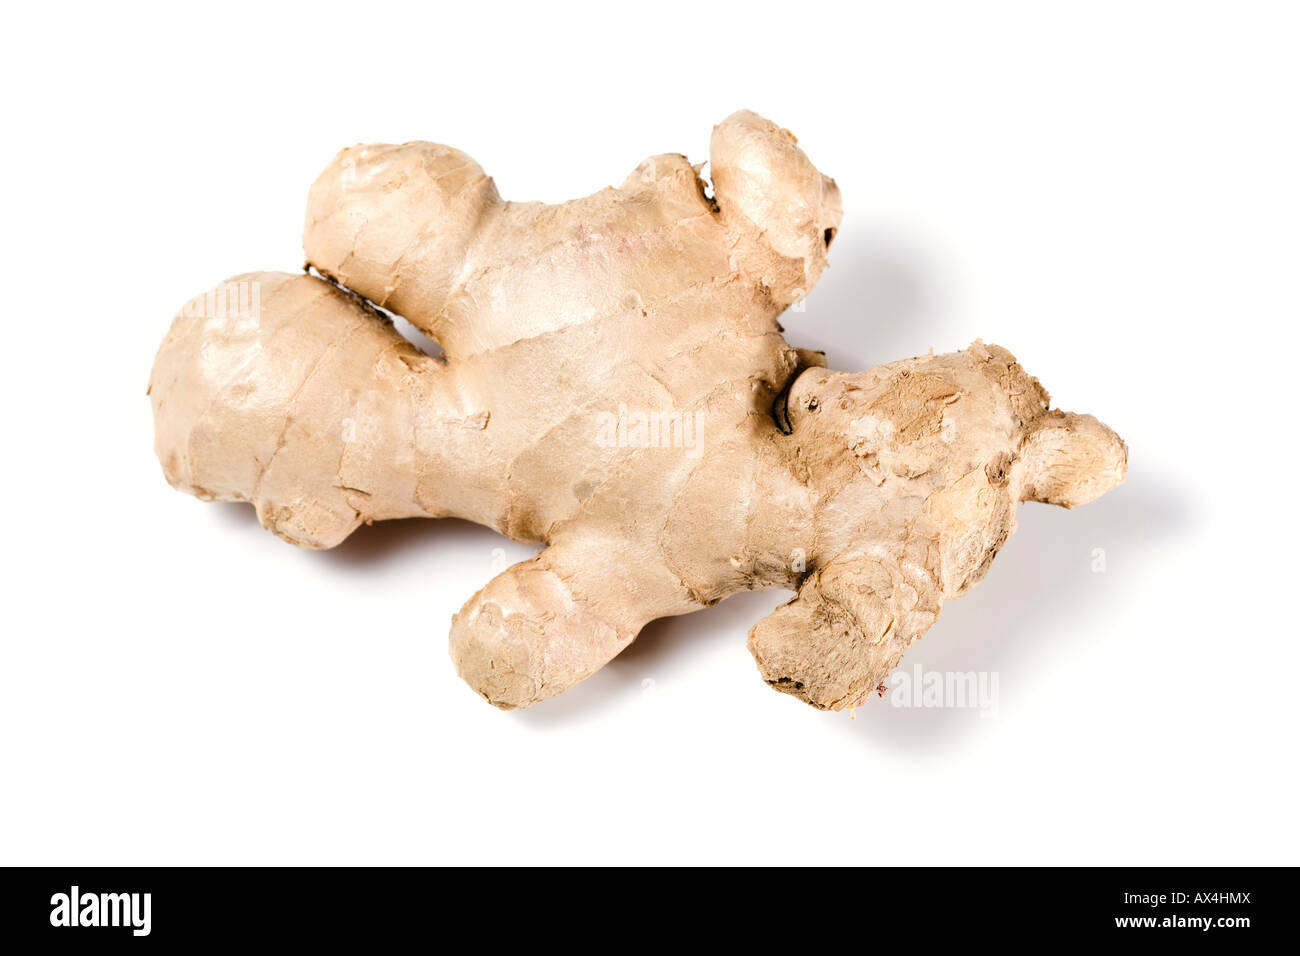 ginger root with human shape isolated on white background - Stock Image